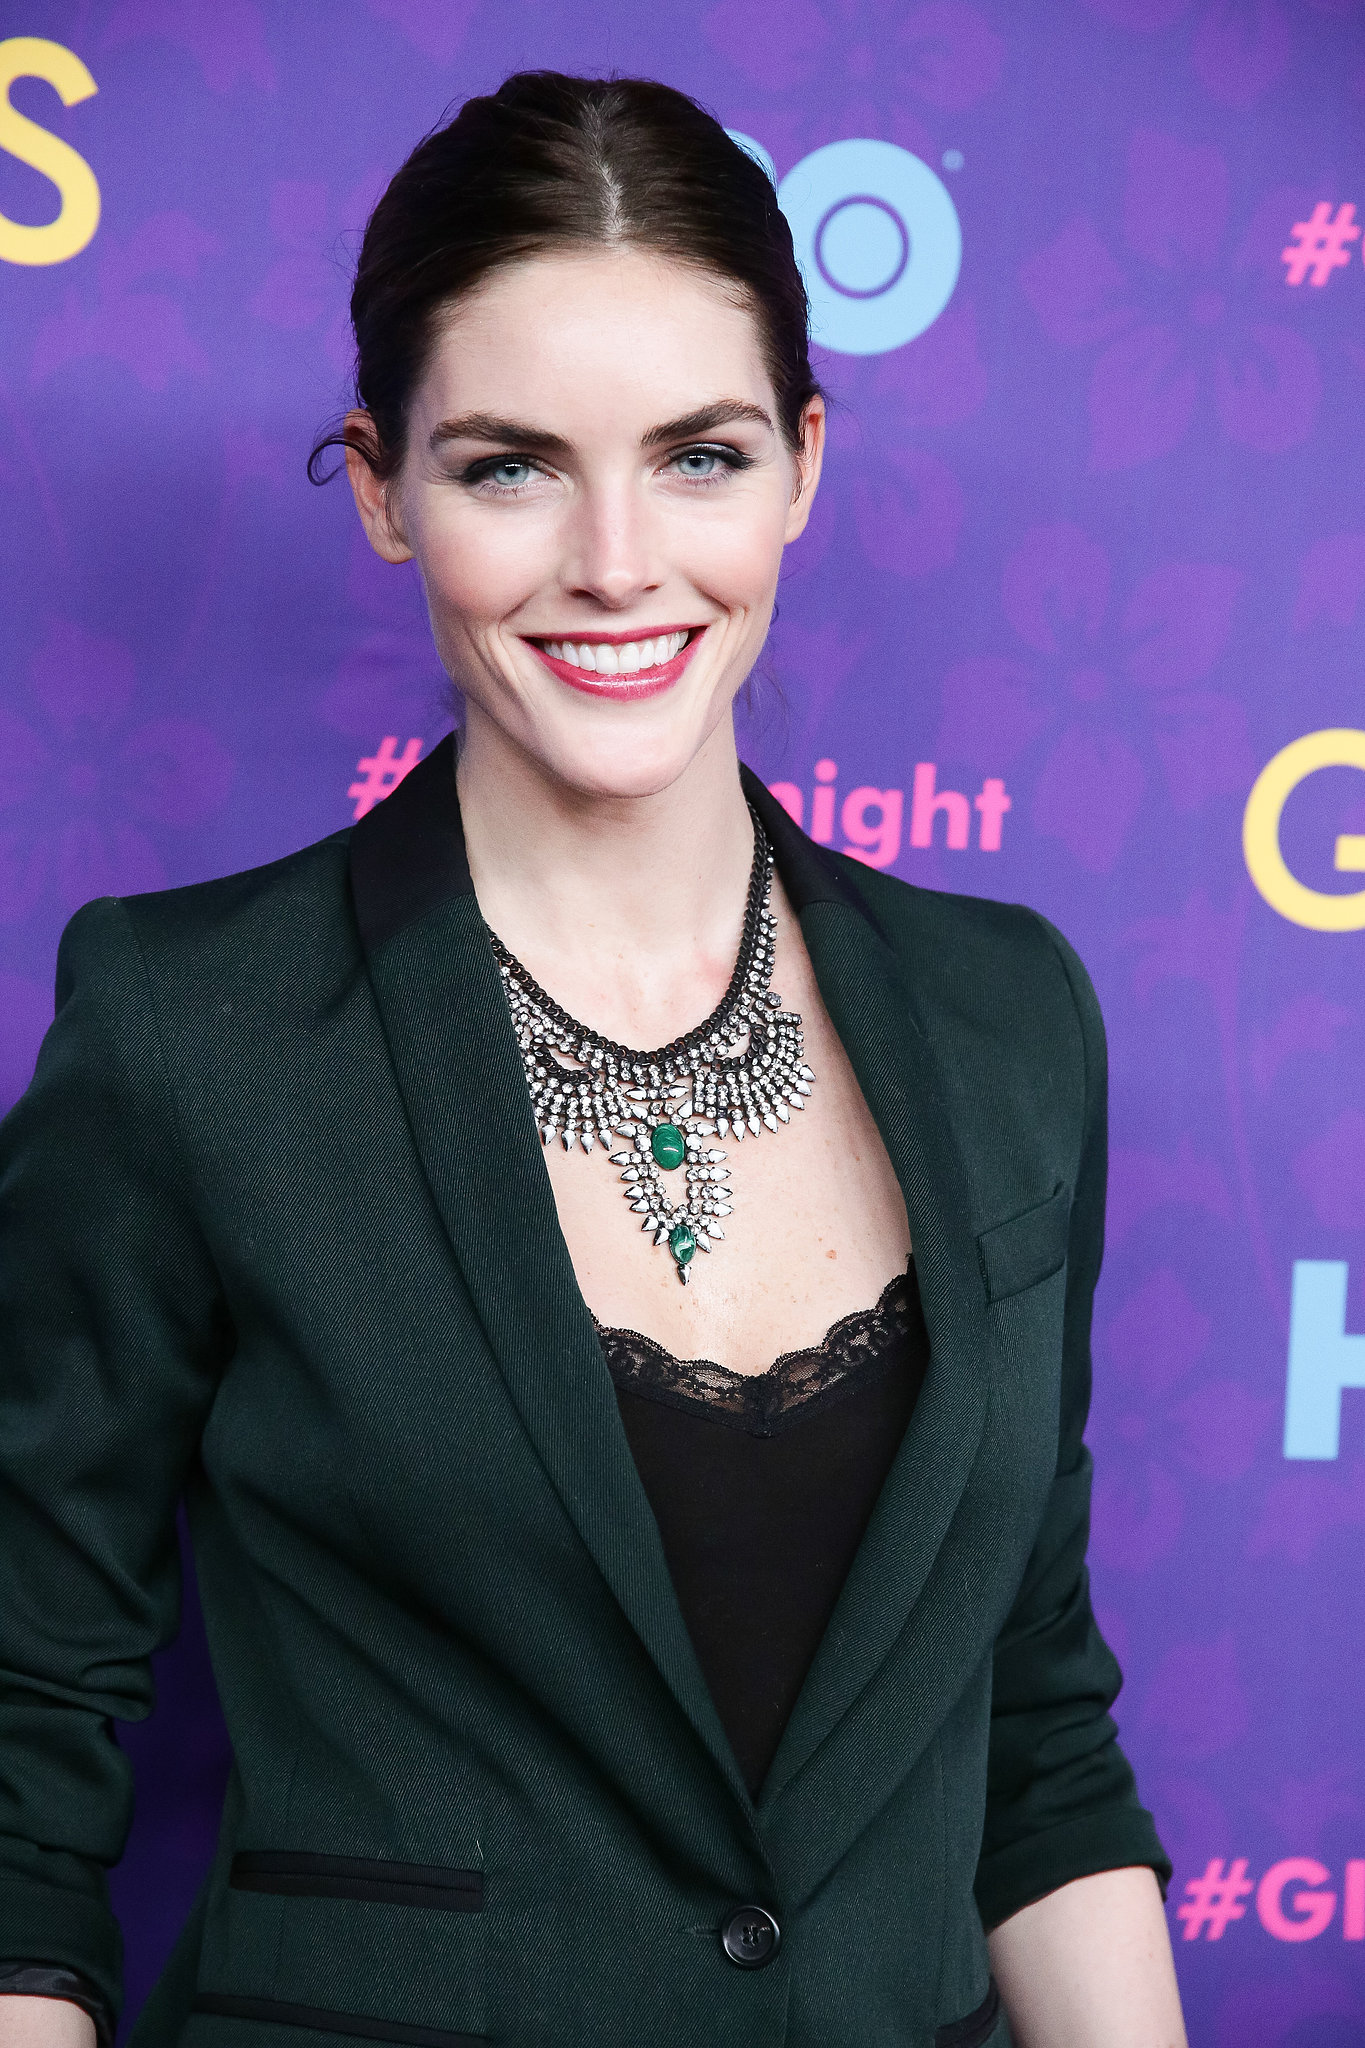 Hilary Rhoda was giving us serious skin envy at the premiere, where her pink lipstick and angelic bun were the perfect complement to her porcelain complexion.